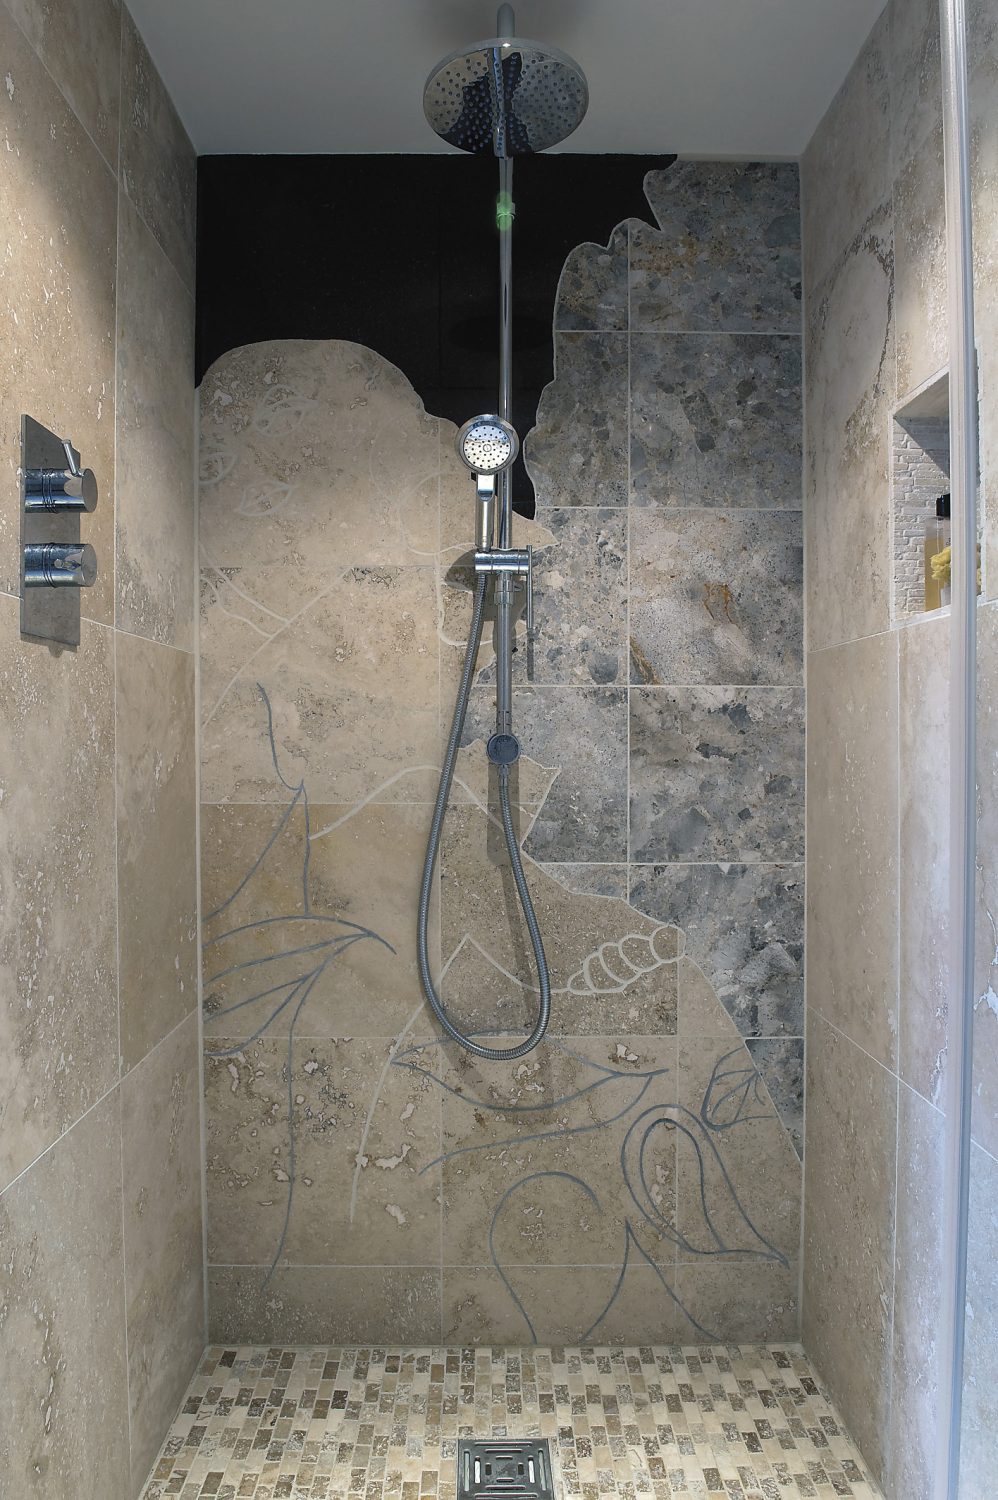 Sally hand cut the stone in her walk-in shower to create a design by her brother, the artist Gary Hume